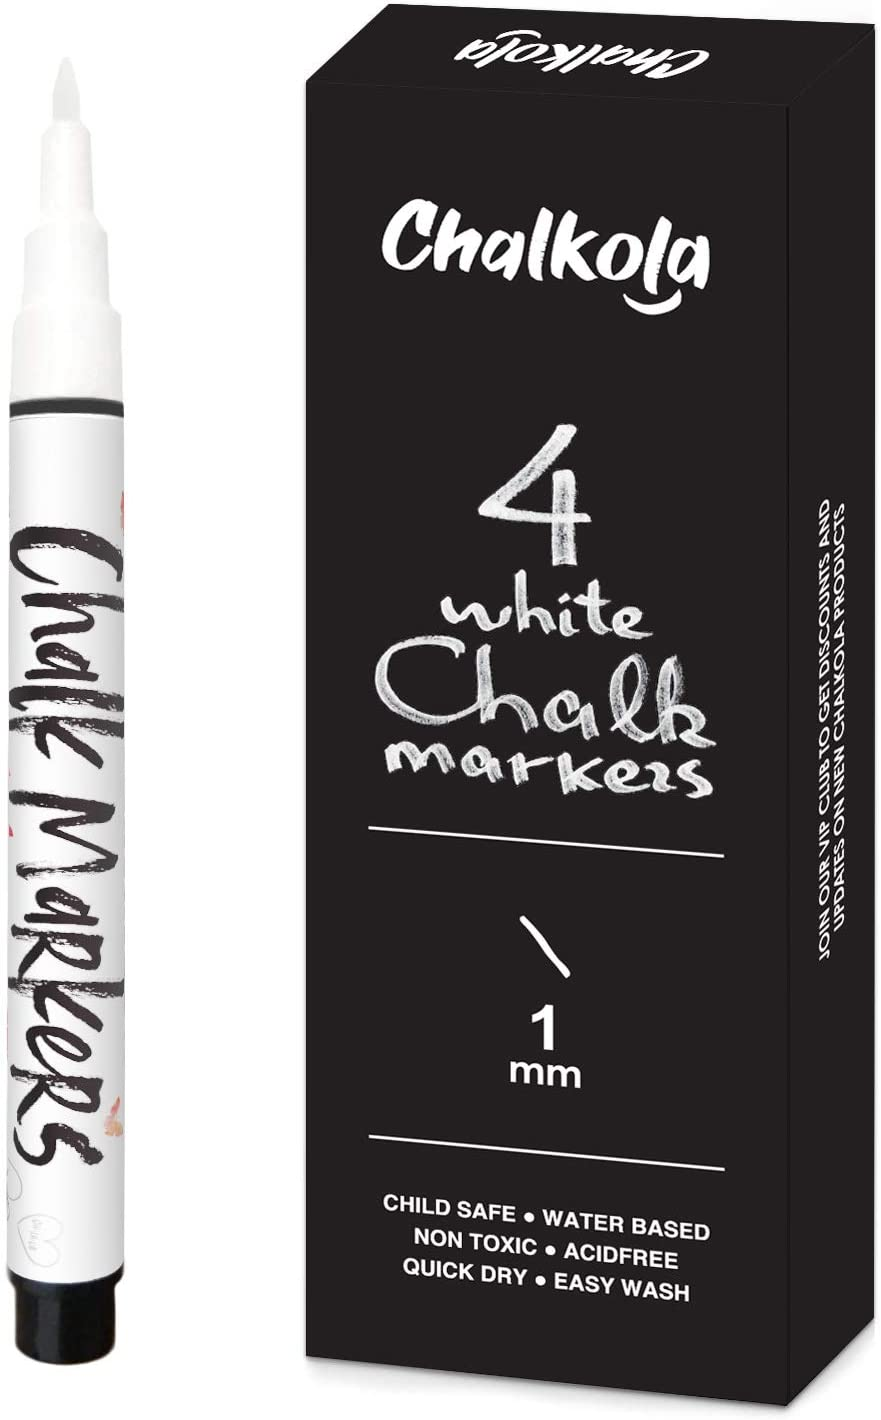 White Chalk Markers Variety Pack - 1mm to 30mm